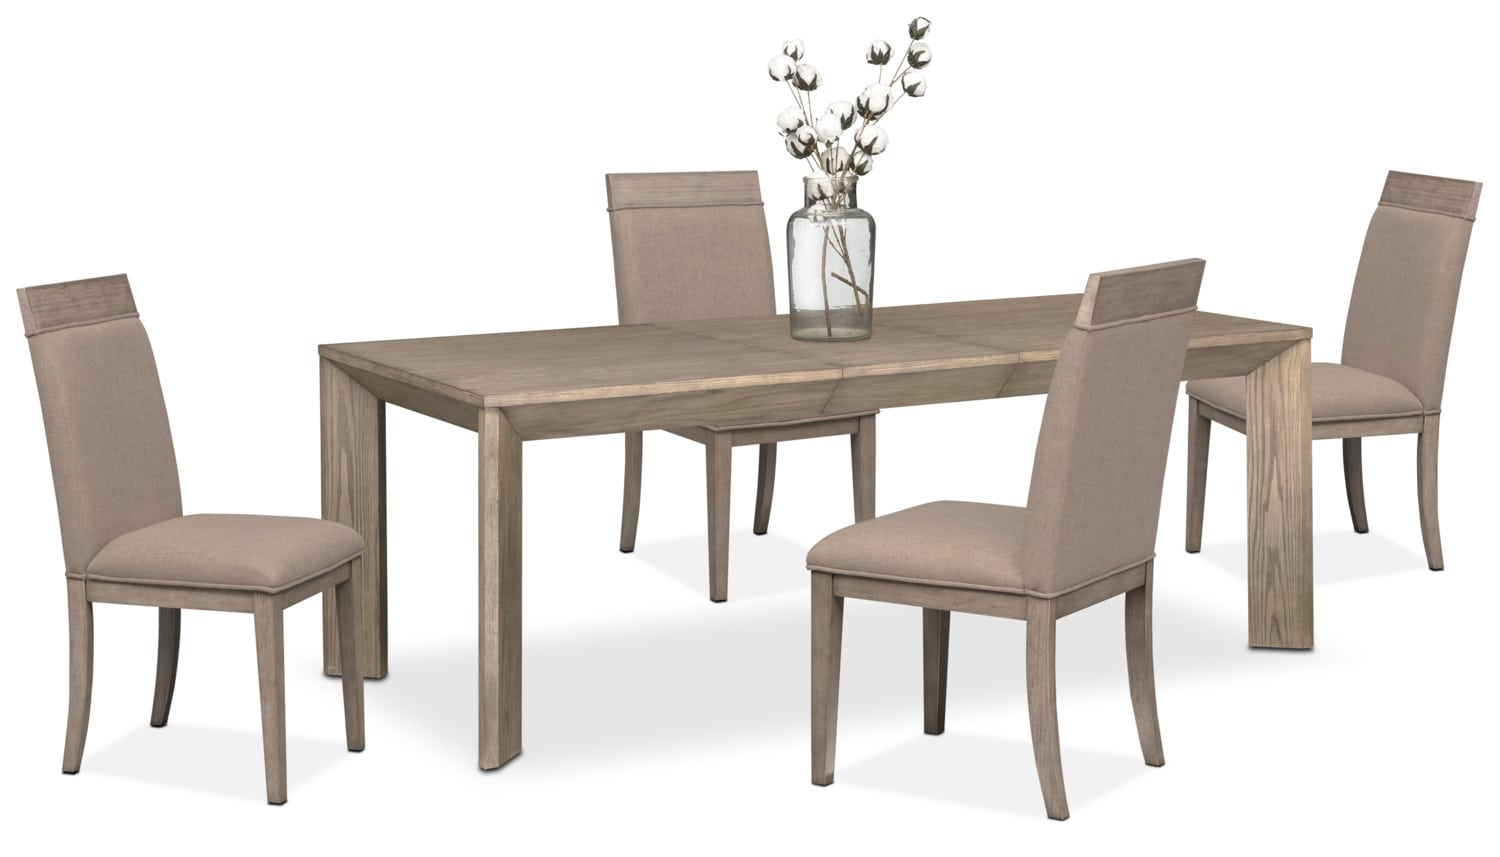 gavin table and 4 side chairs graystone value city furniture gavin table and 4 side chairs graystone